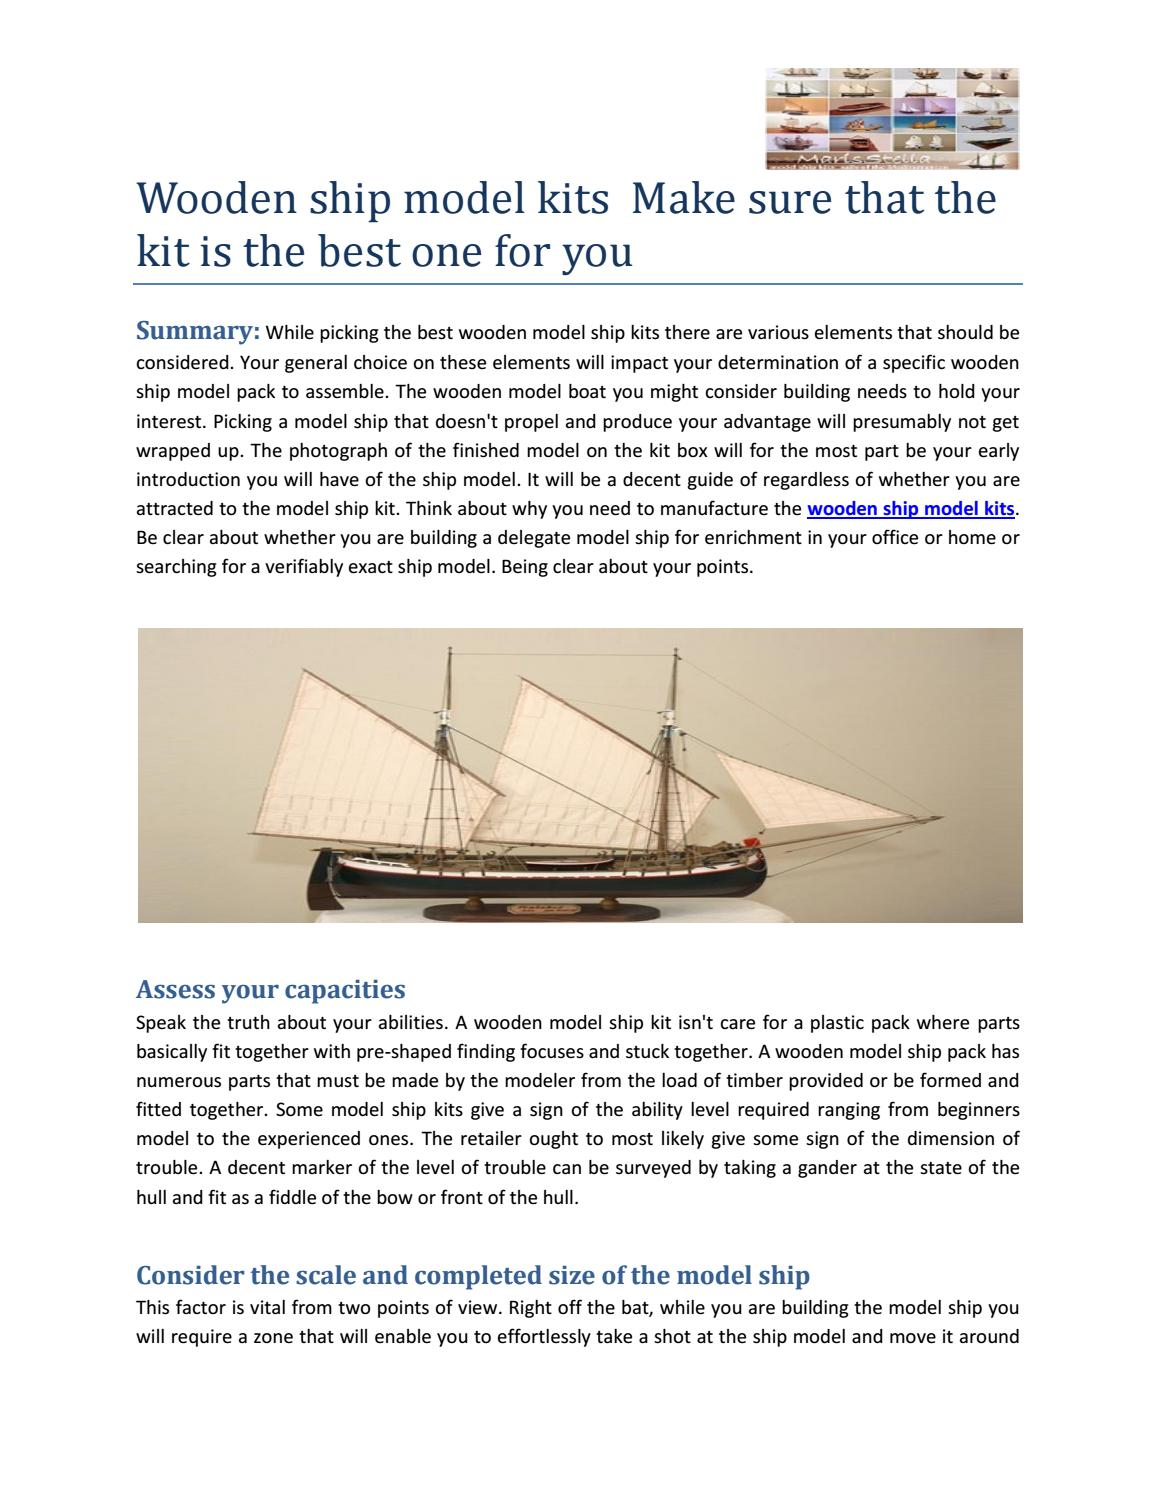 Wooden Ship Model Kits Make Sure That The Kit Is The Best